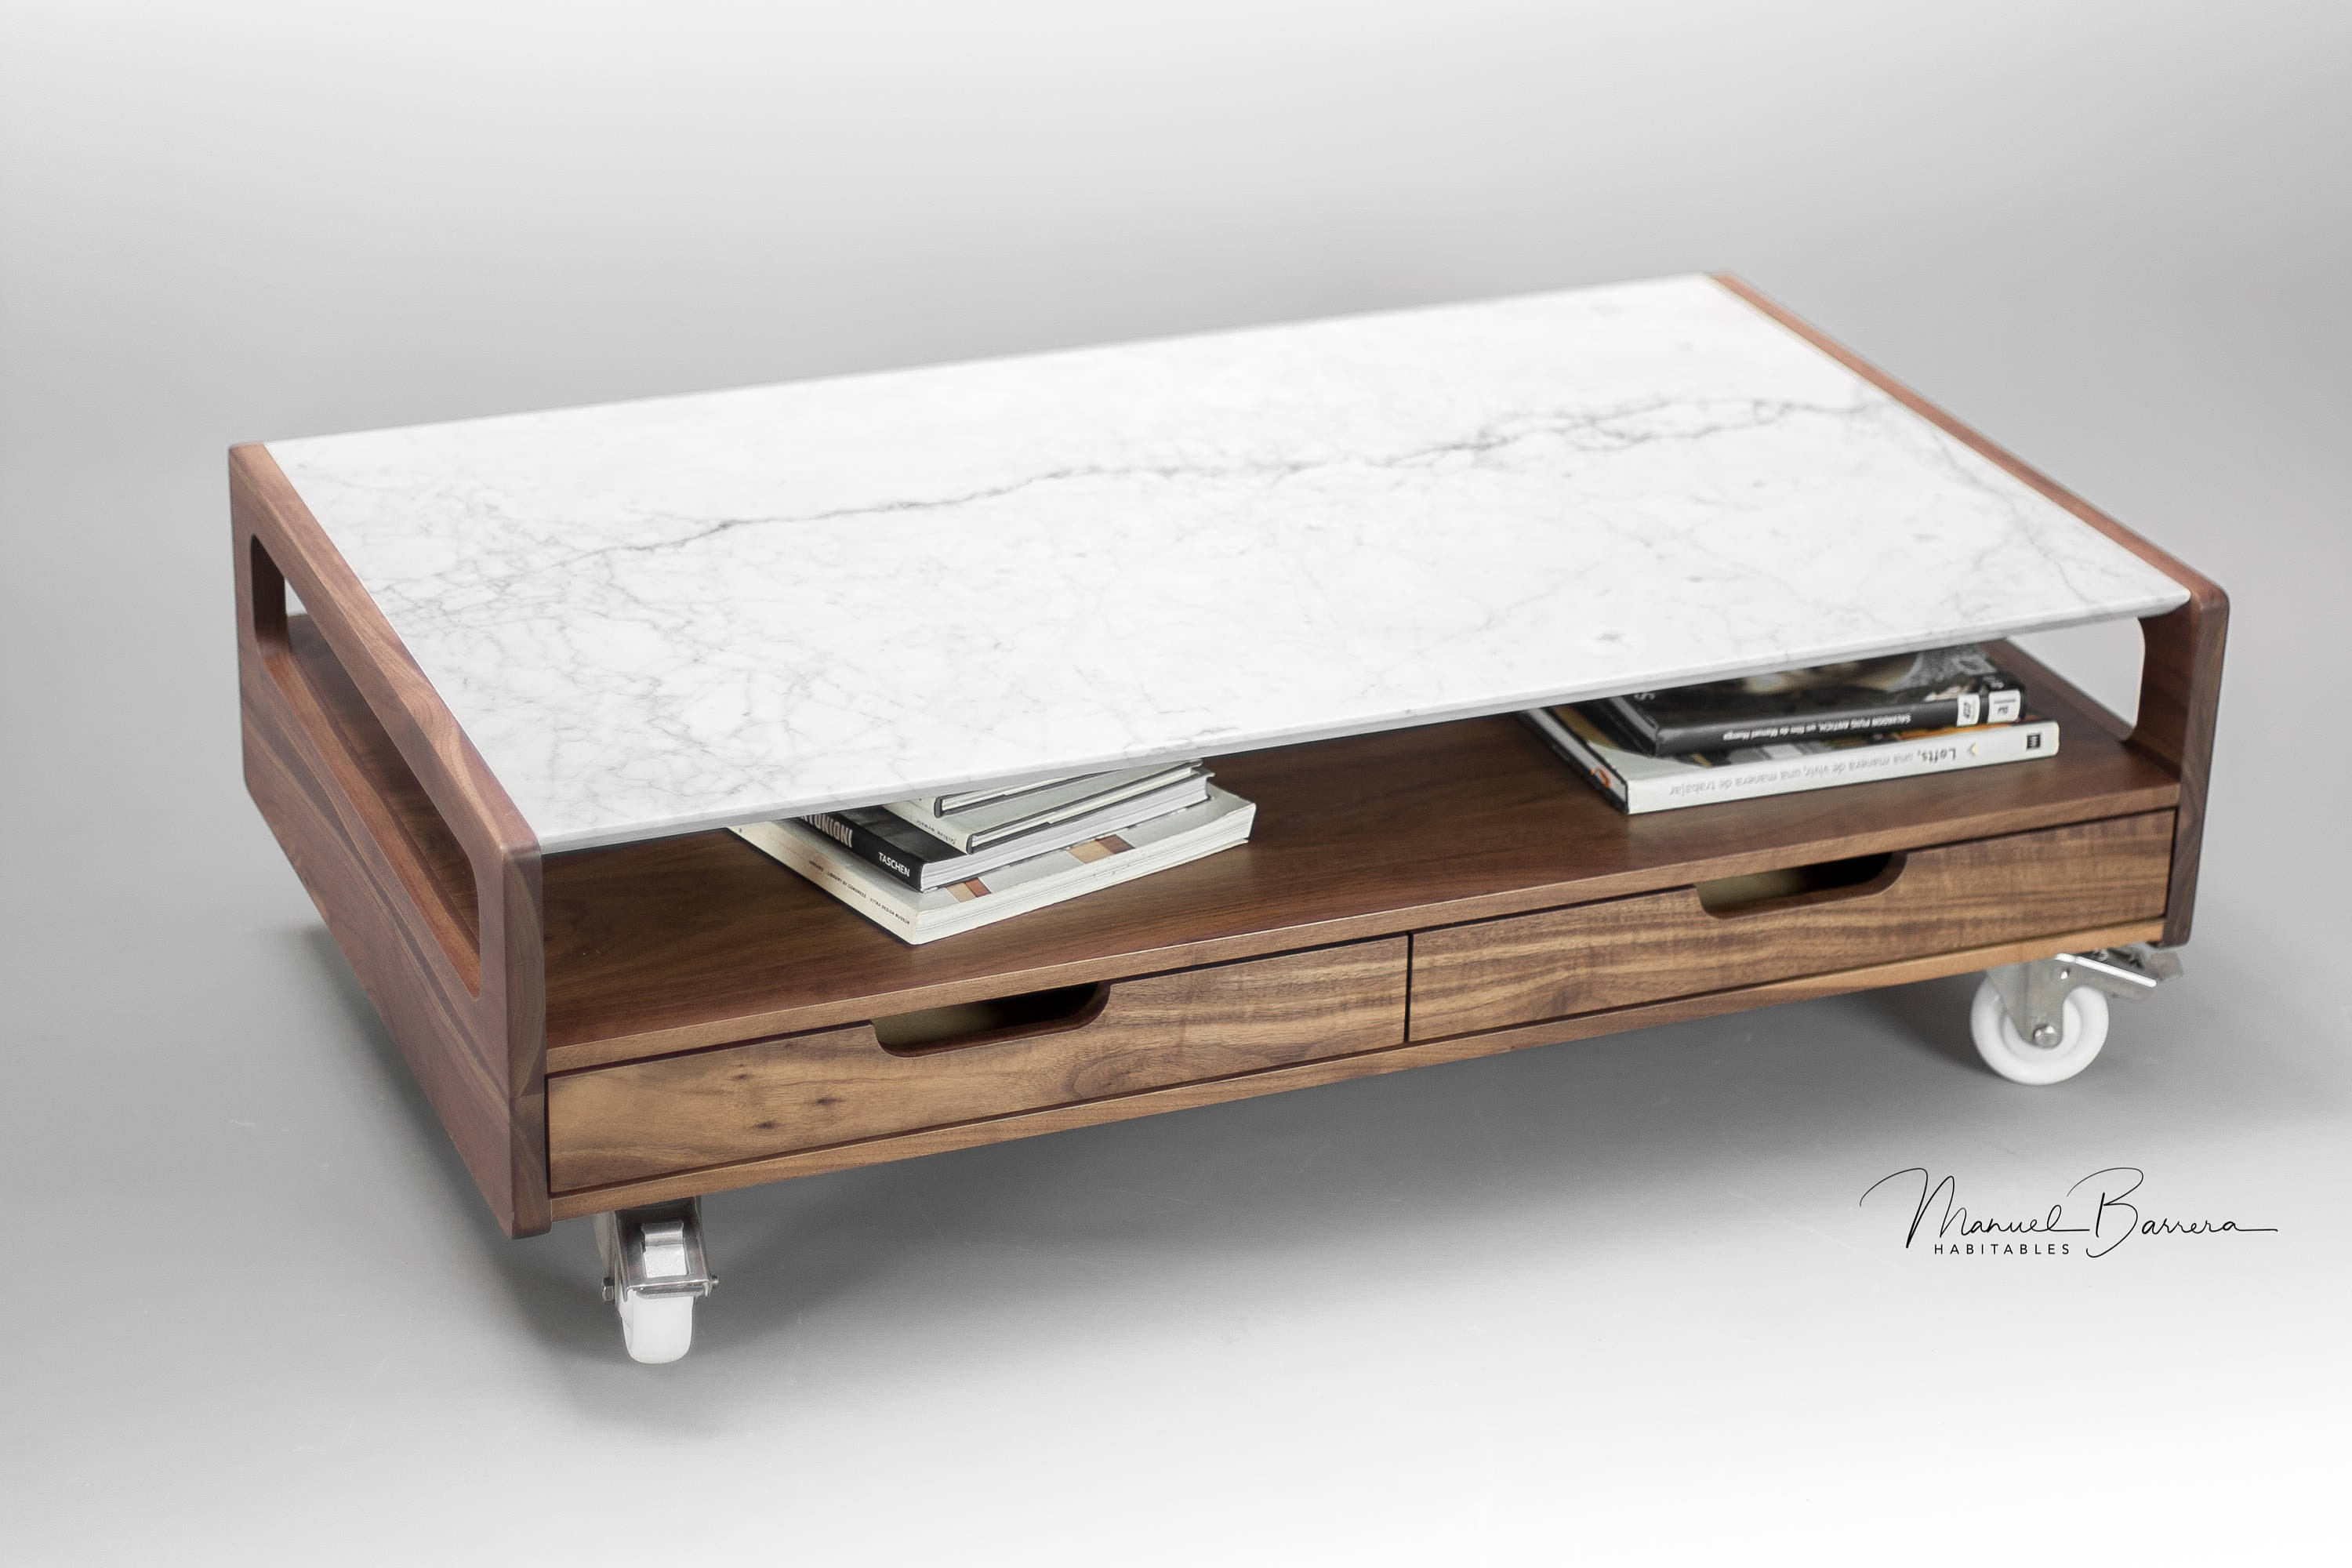 Marble Coffee table center table living room table made of